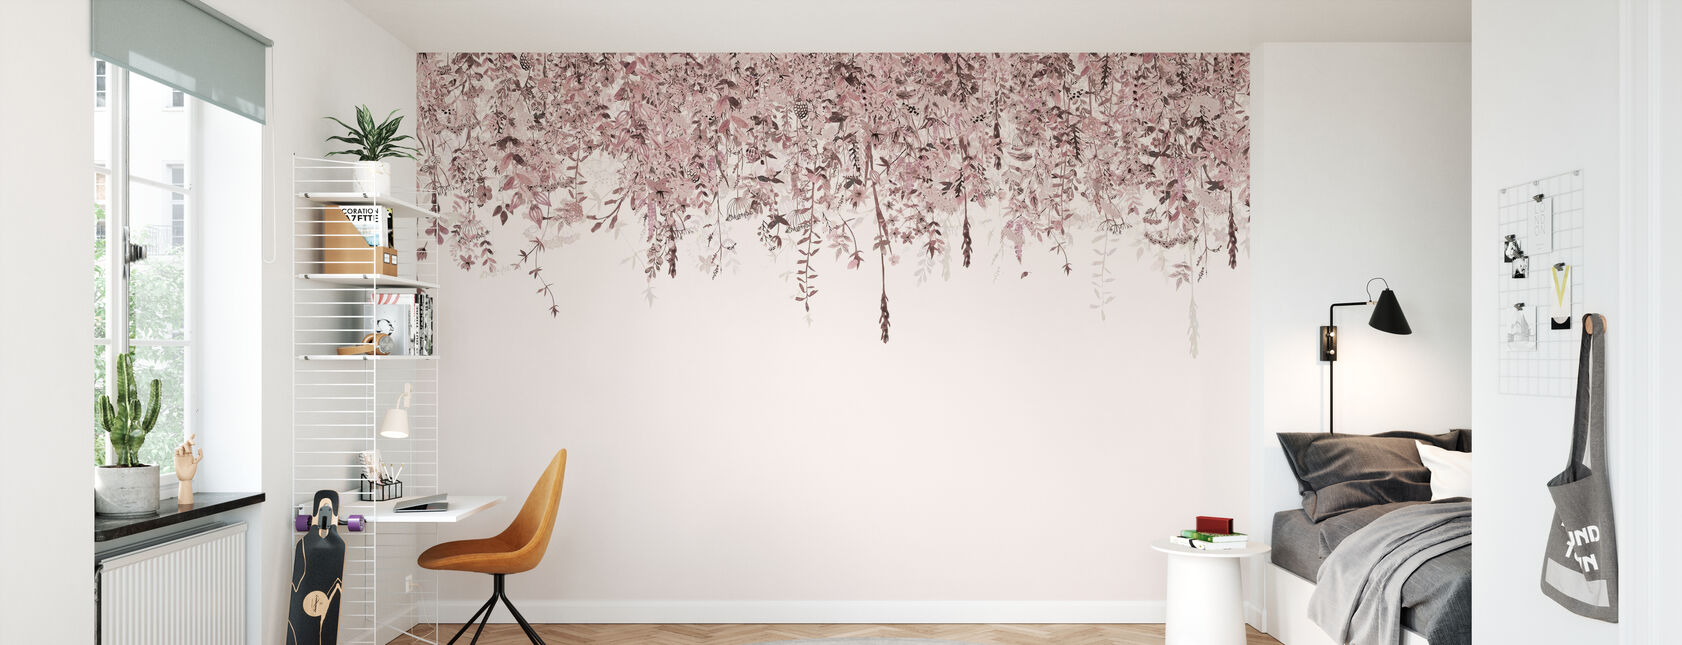 Enchanted Blush - Wallpaper - Kids Room